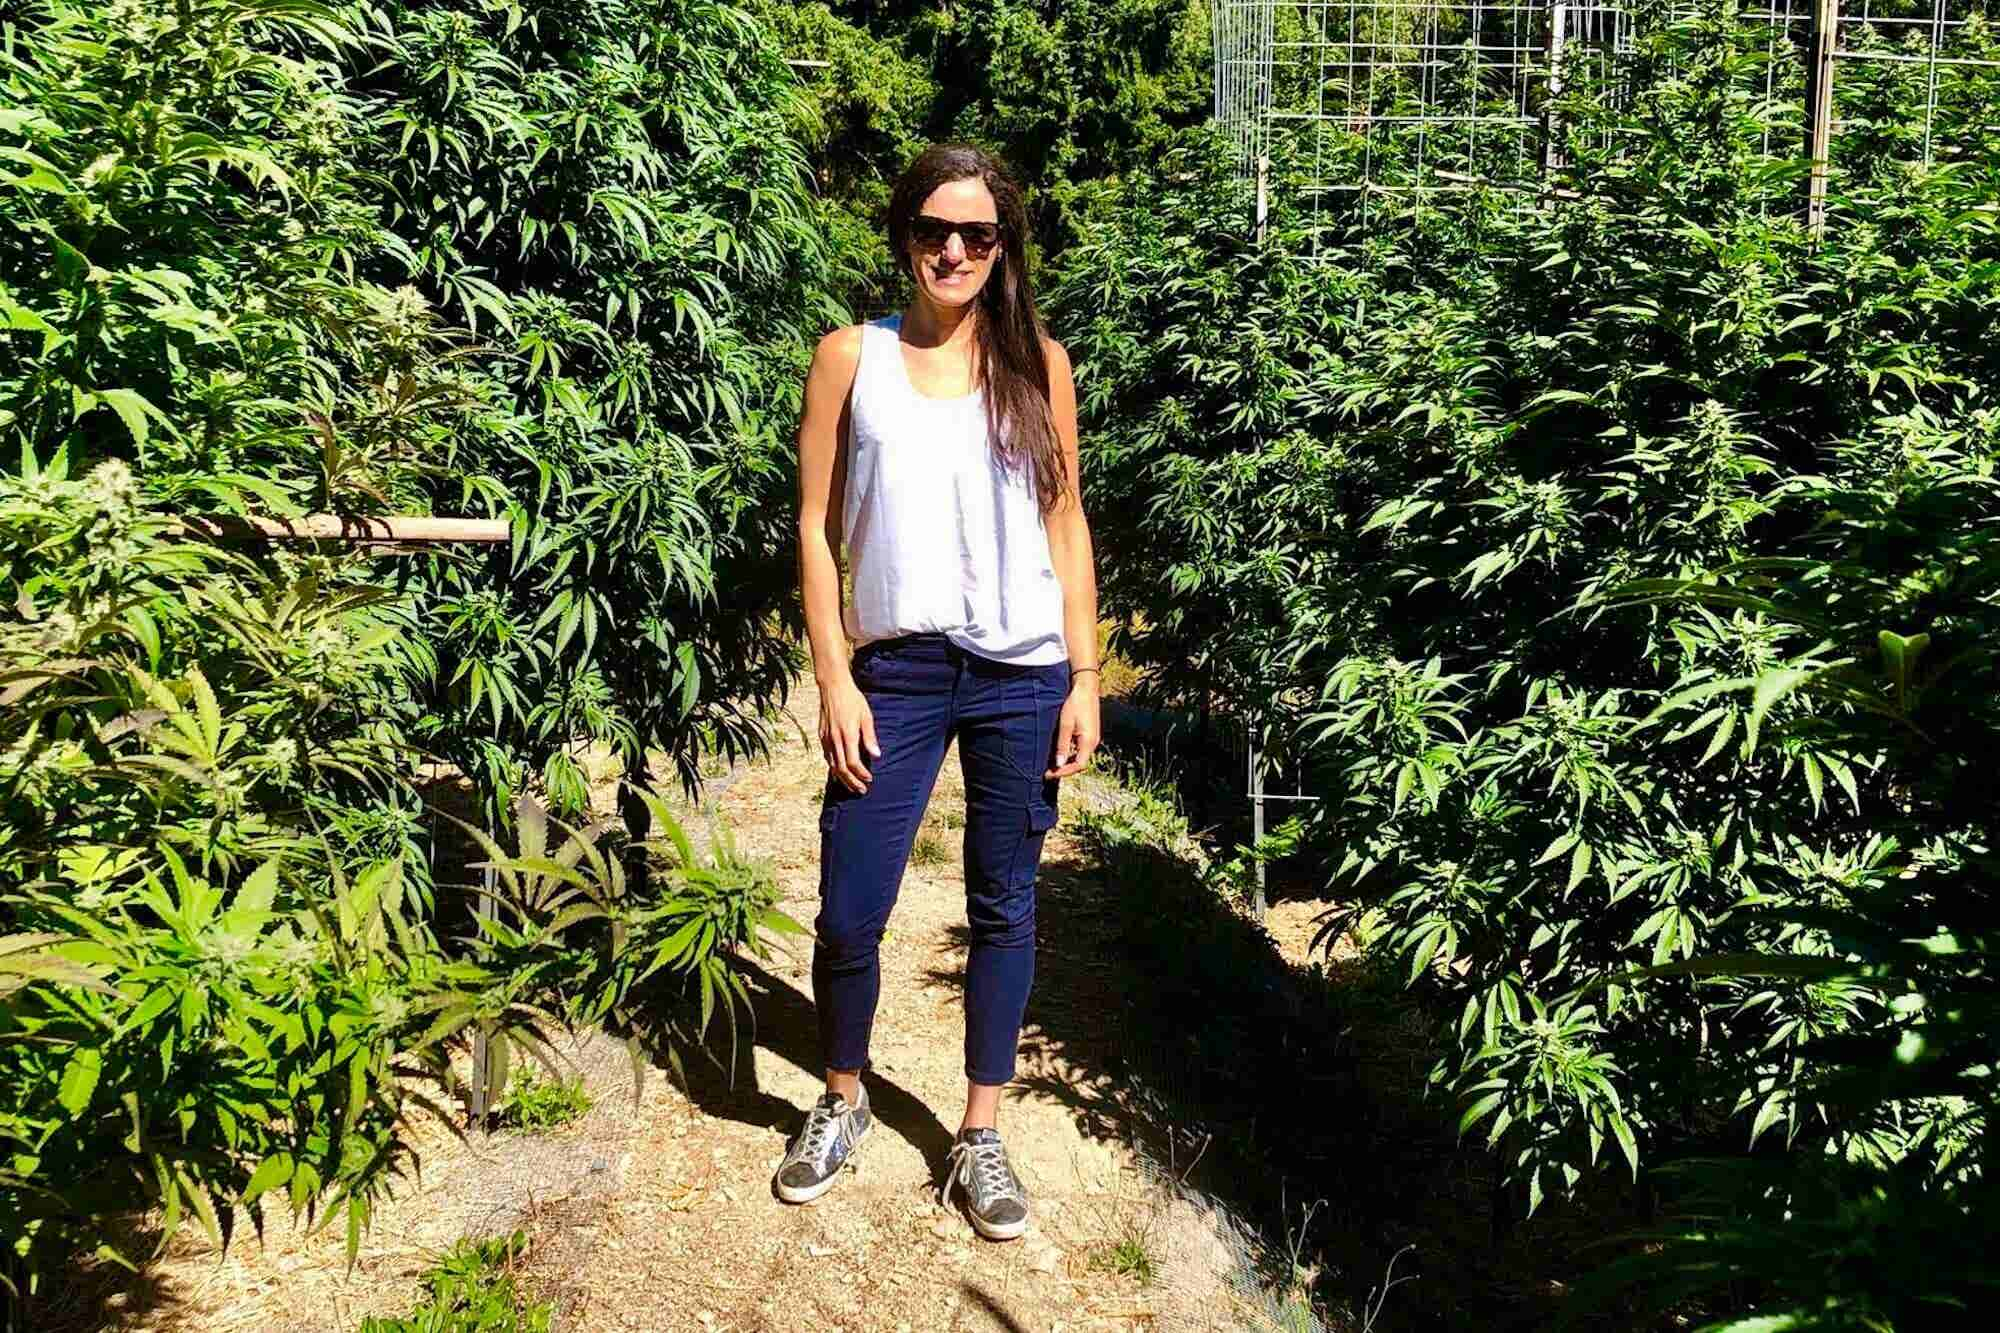 She Runs One of The Biggest PR Companies in Cannabis. So Why Haven't Y...